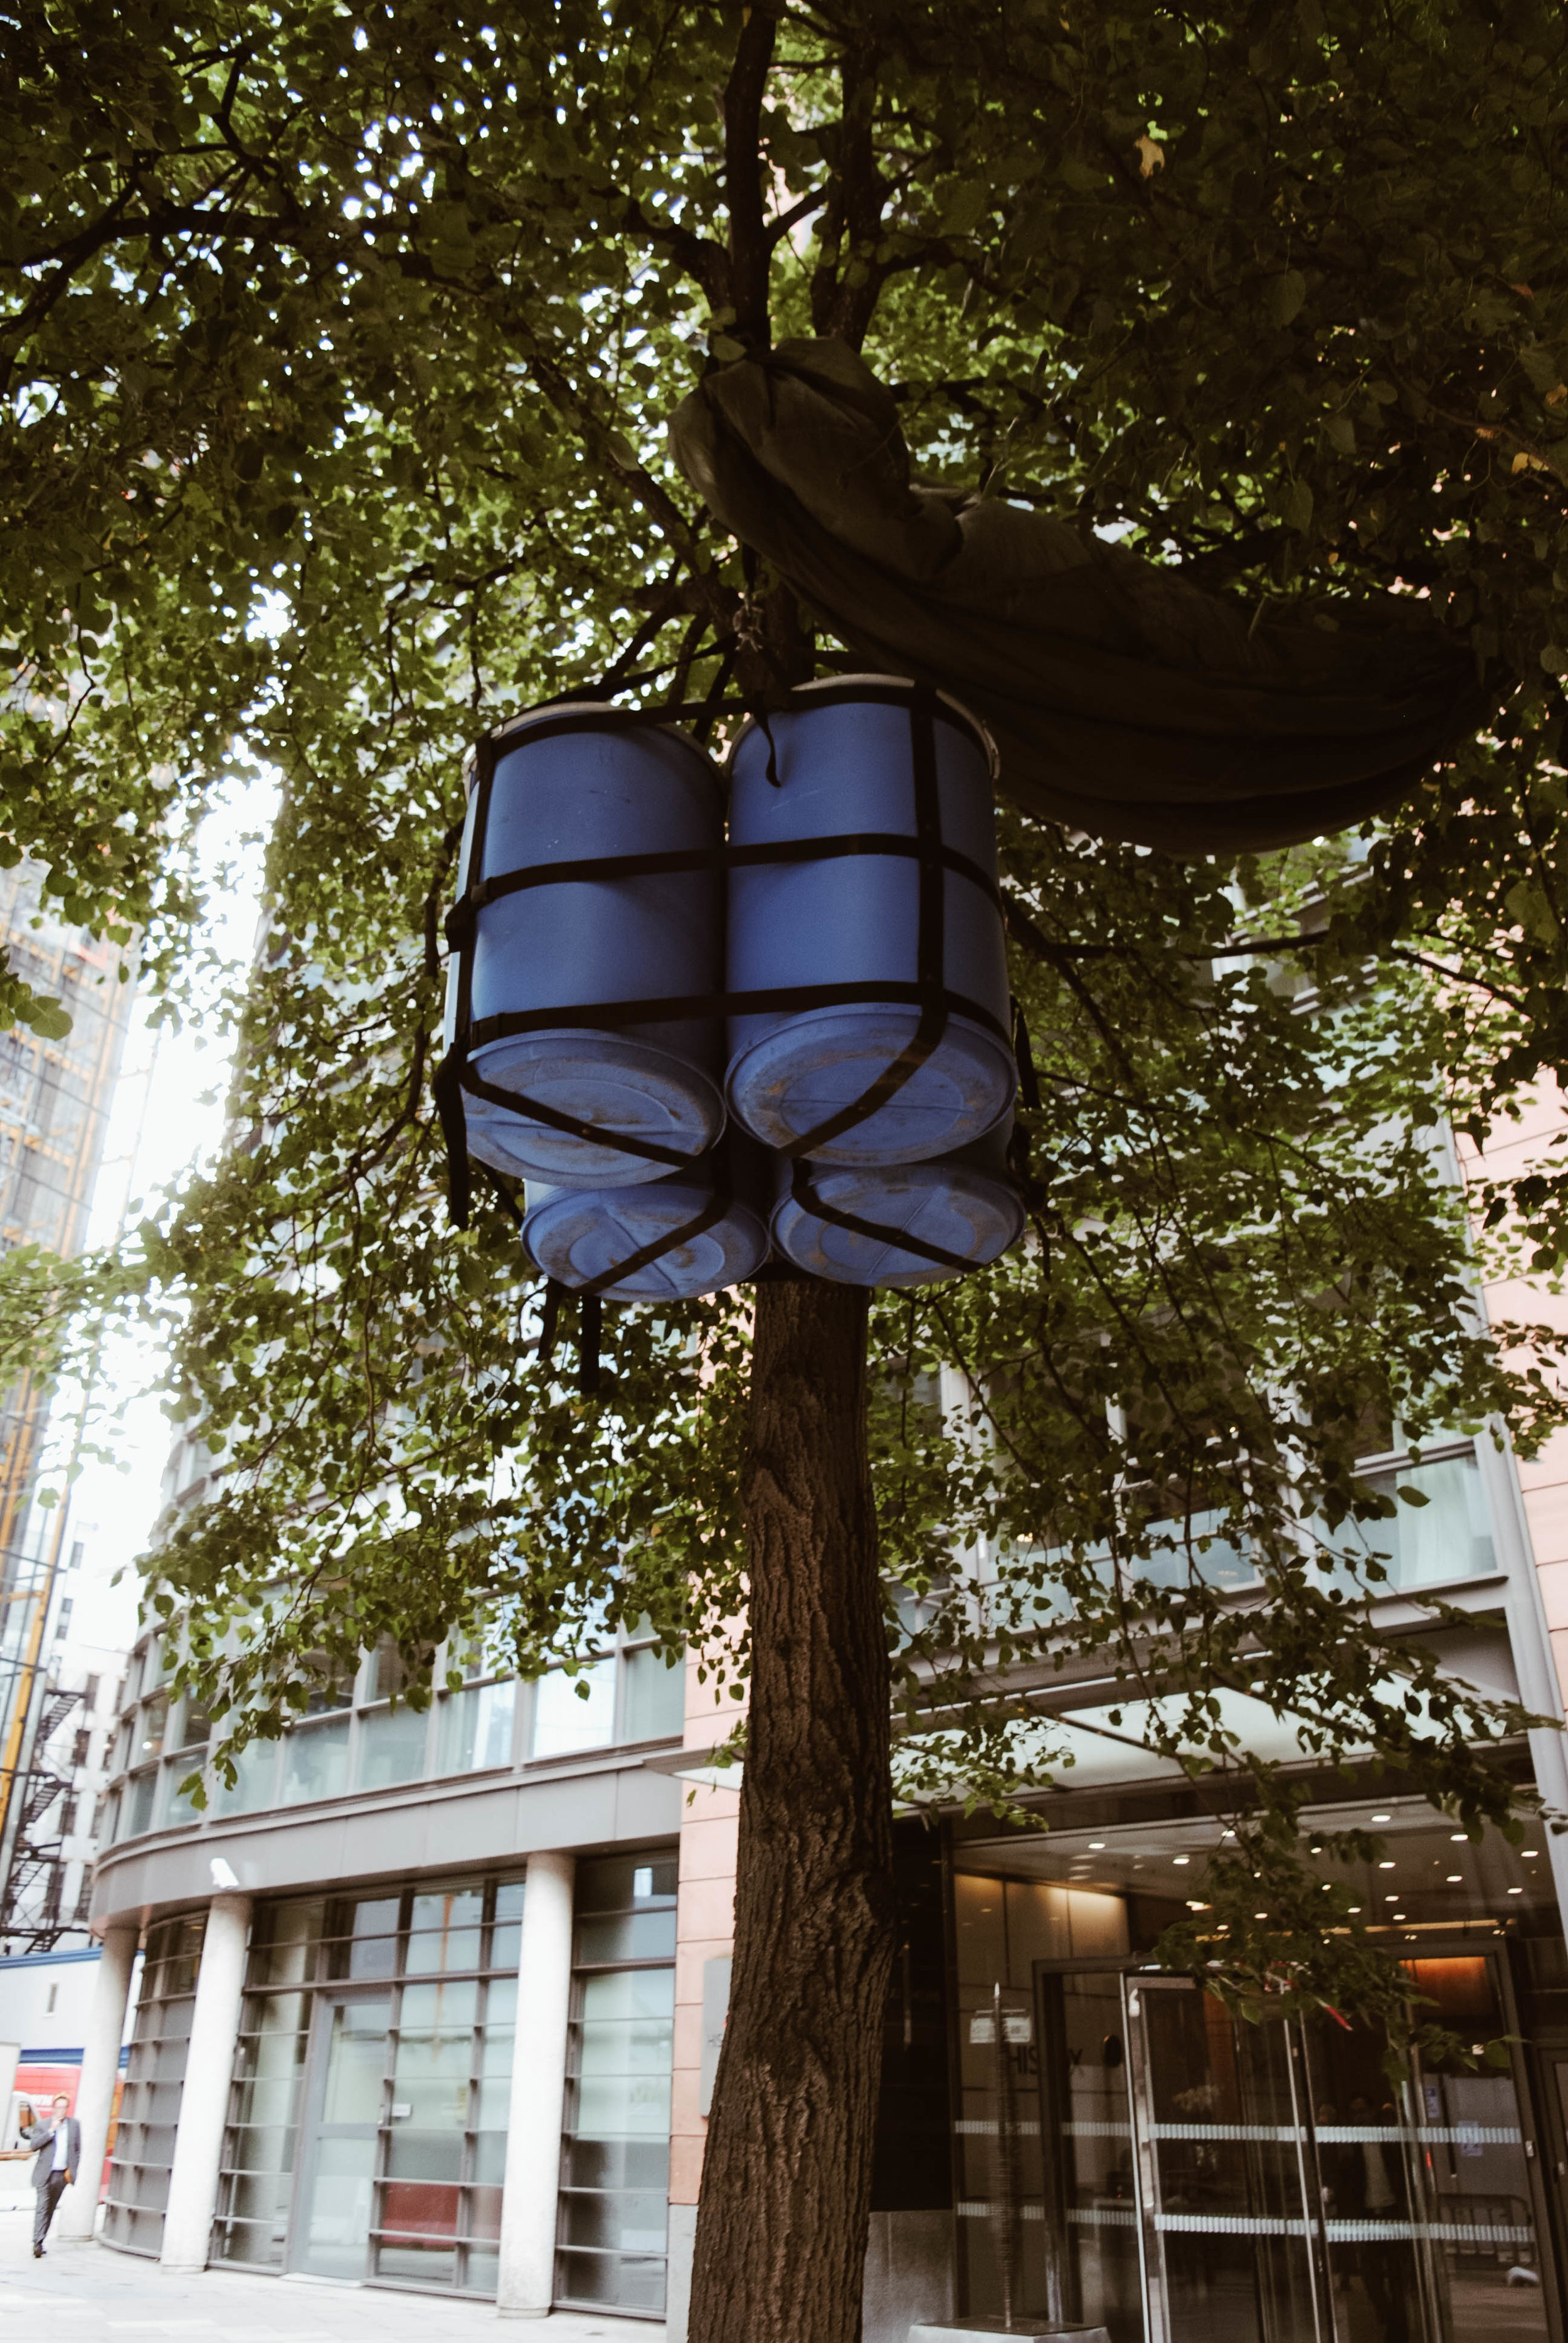 sculpture in the city 2017 (11 of 17).jpg